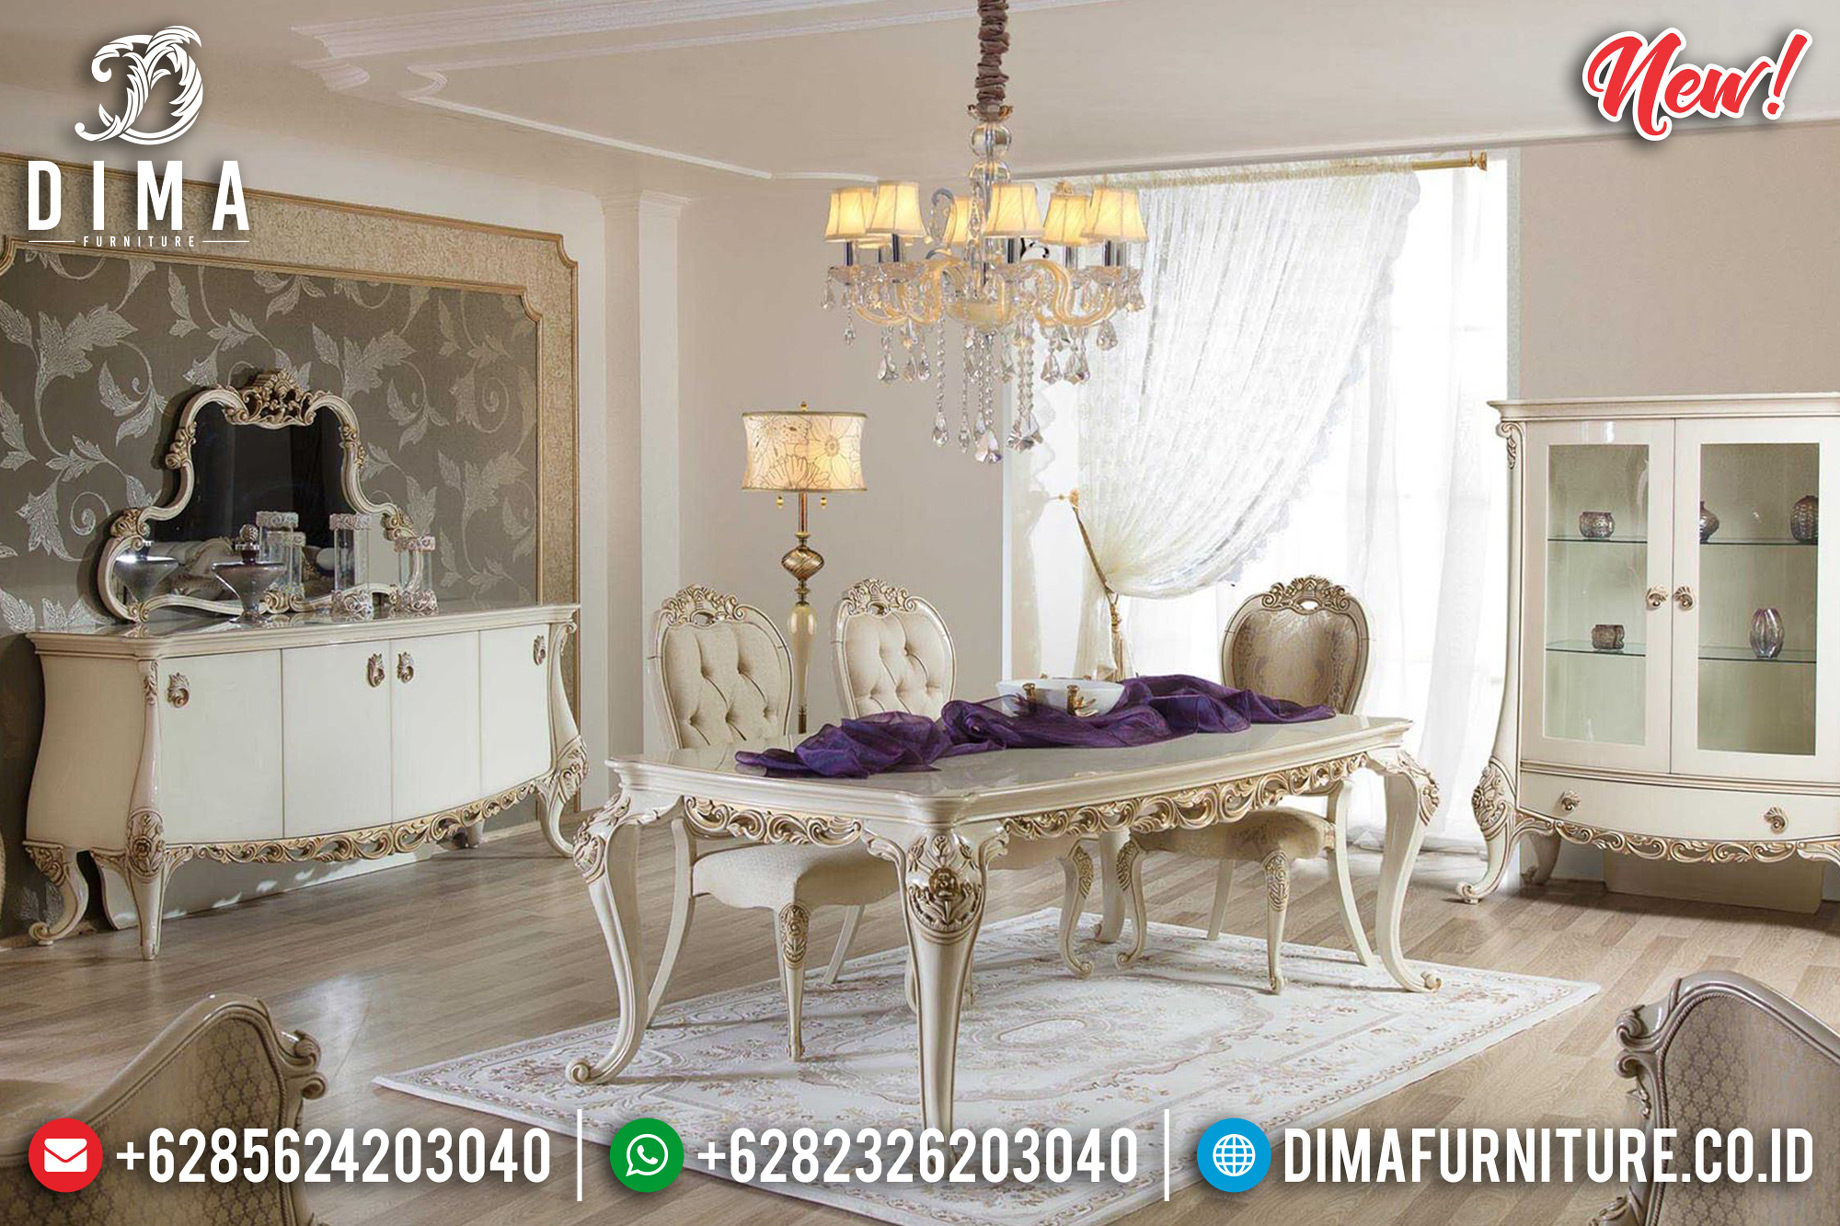 Meja Makan Mewah Pamela Luxury Carving New Furniture Jepara Design DF-1457